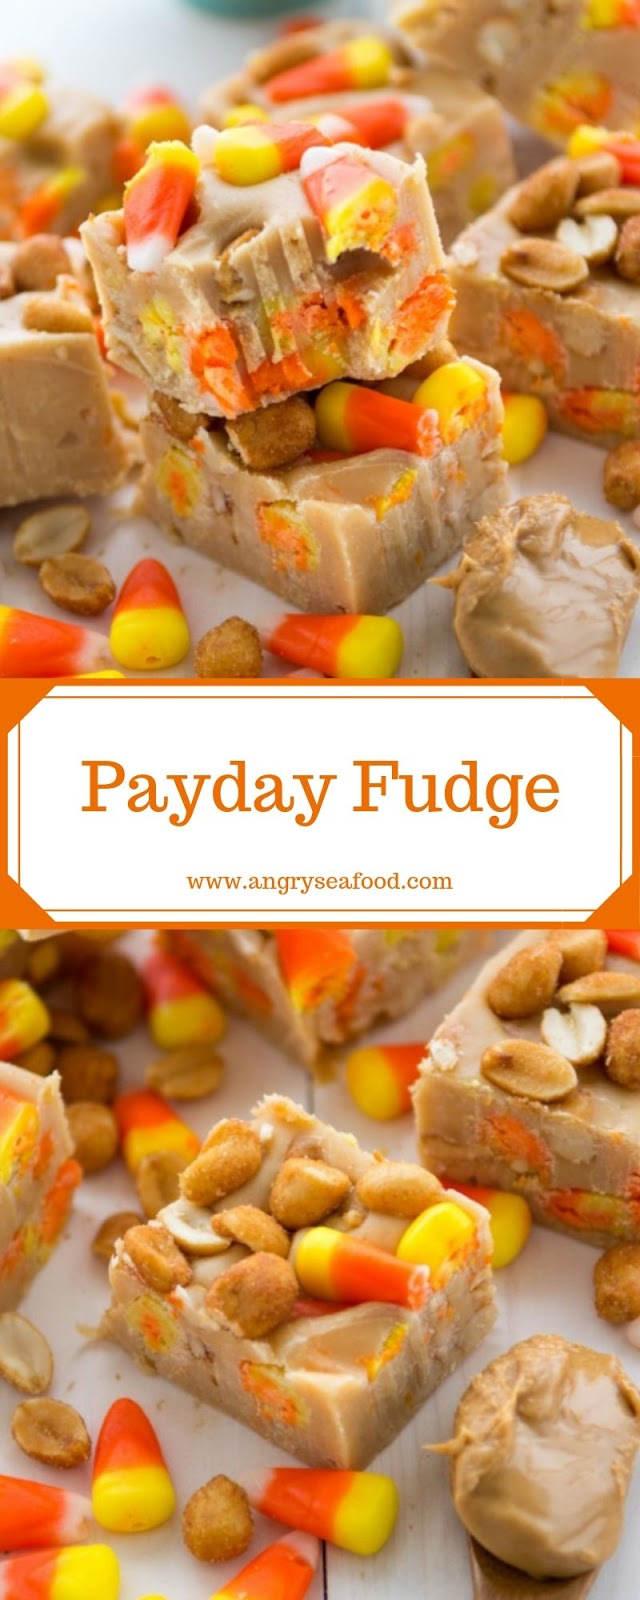 Payday Fudge